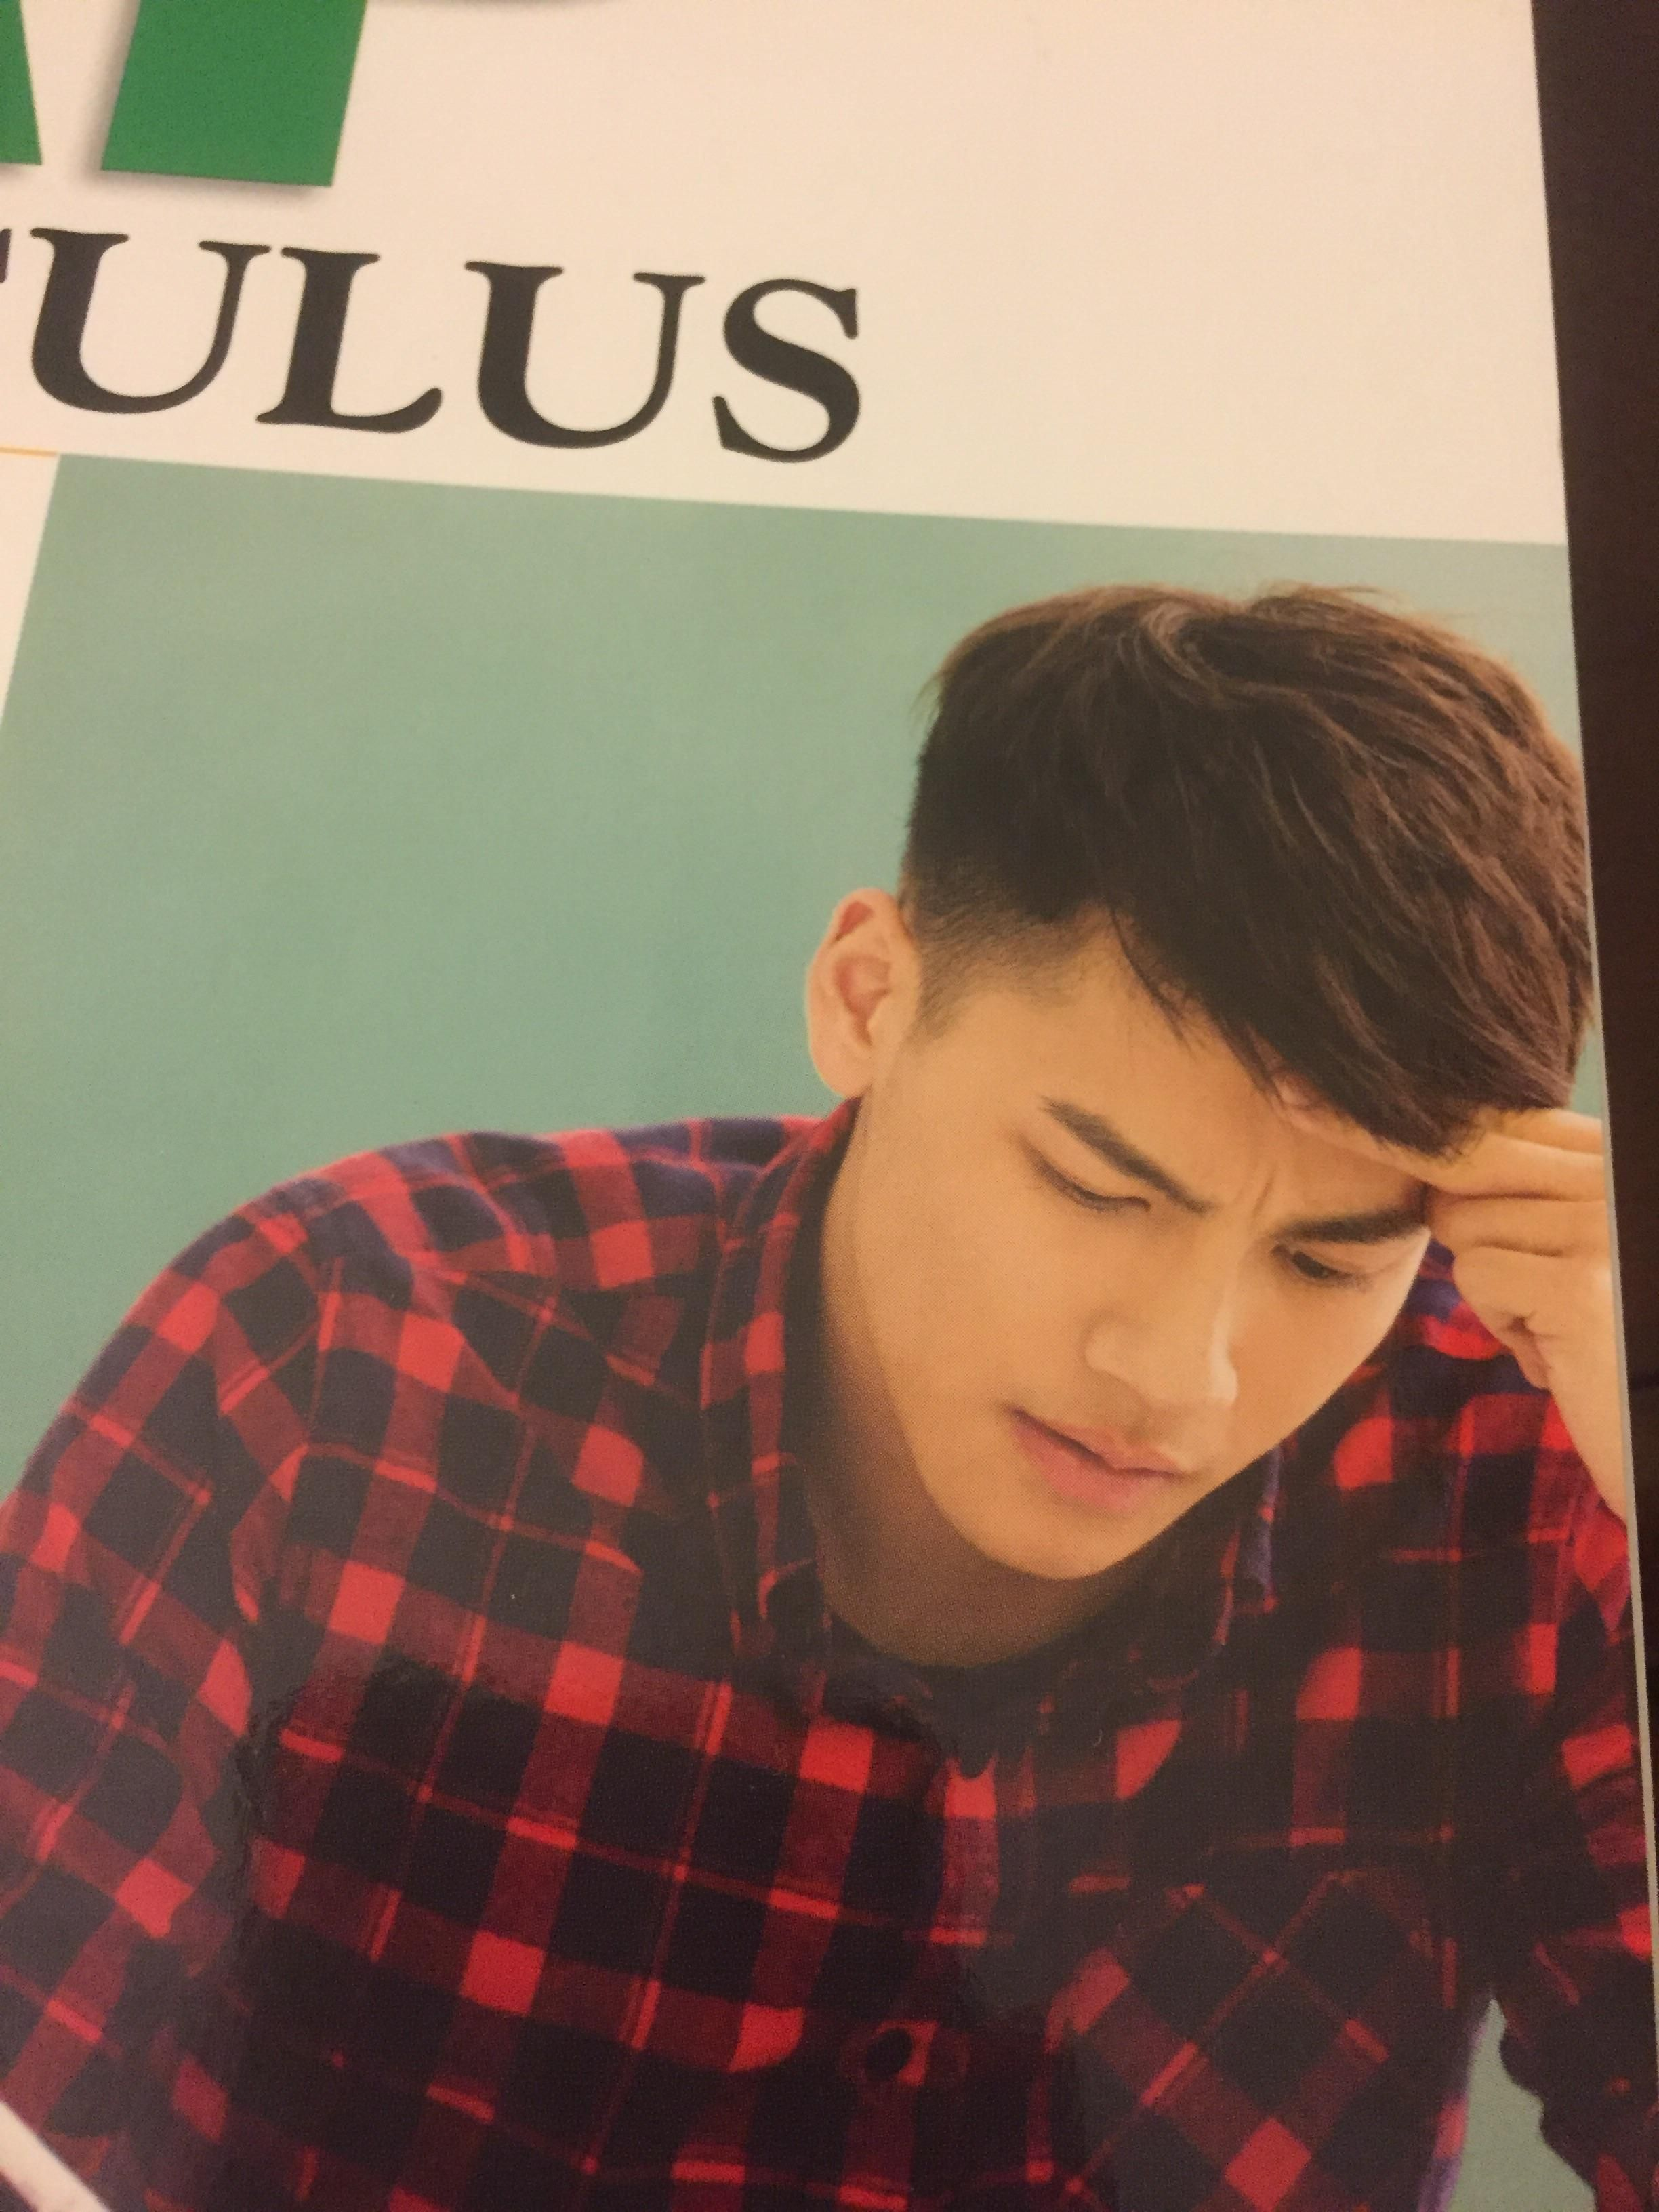 Barron S 14th Edition Ap Calculus Book Cover Has A Guy Flipping